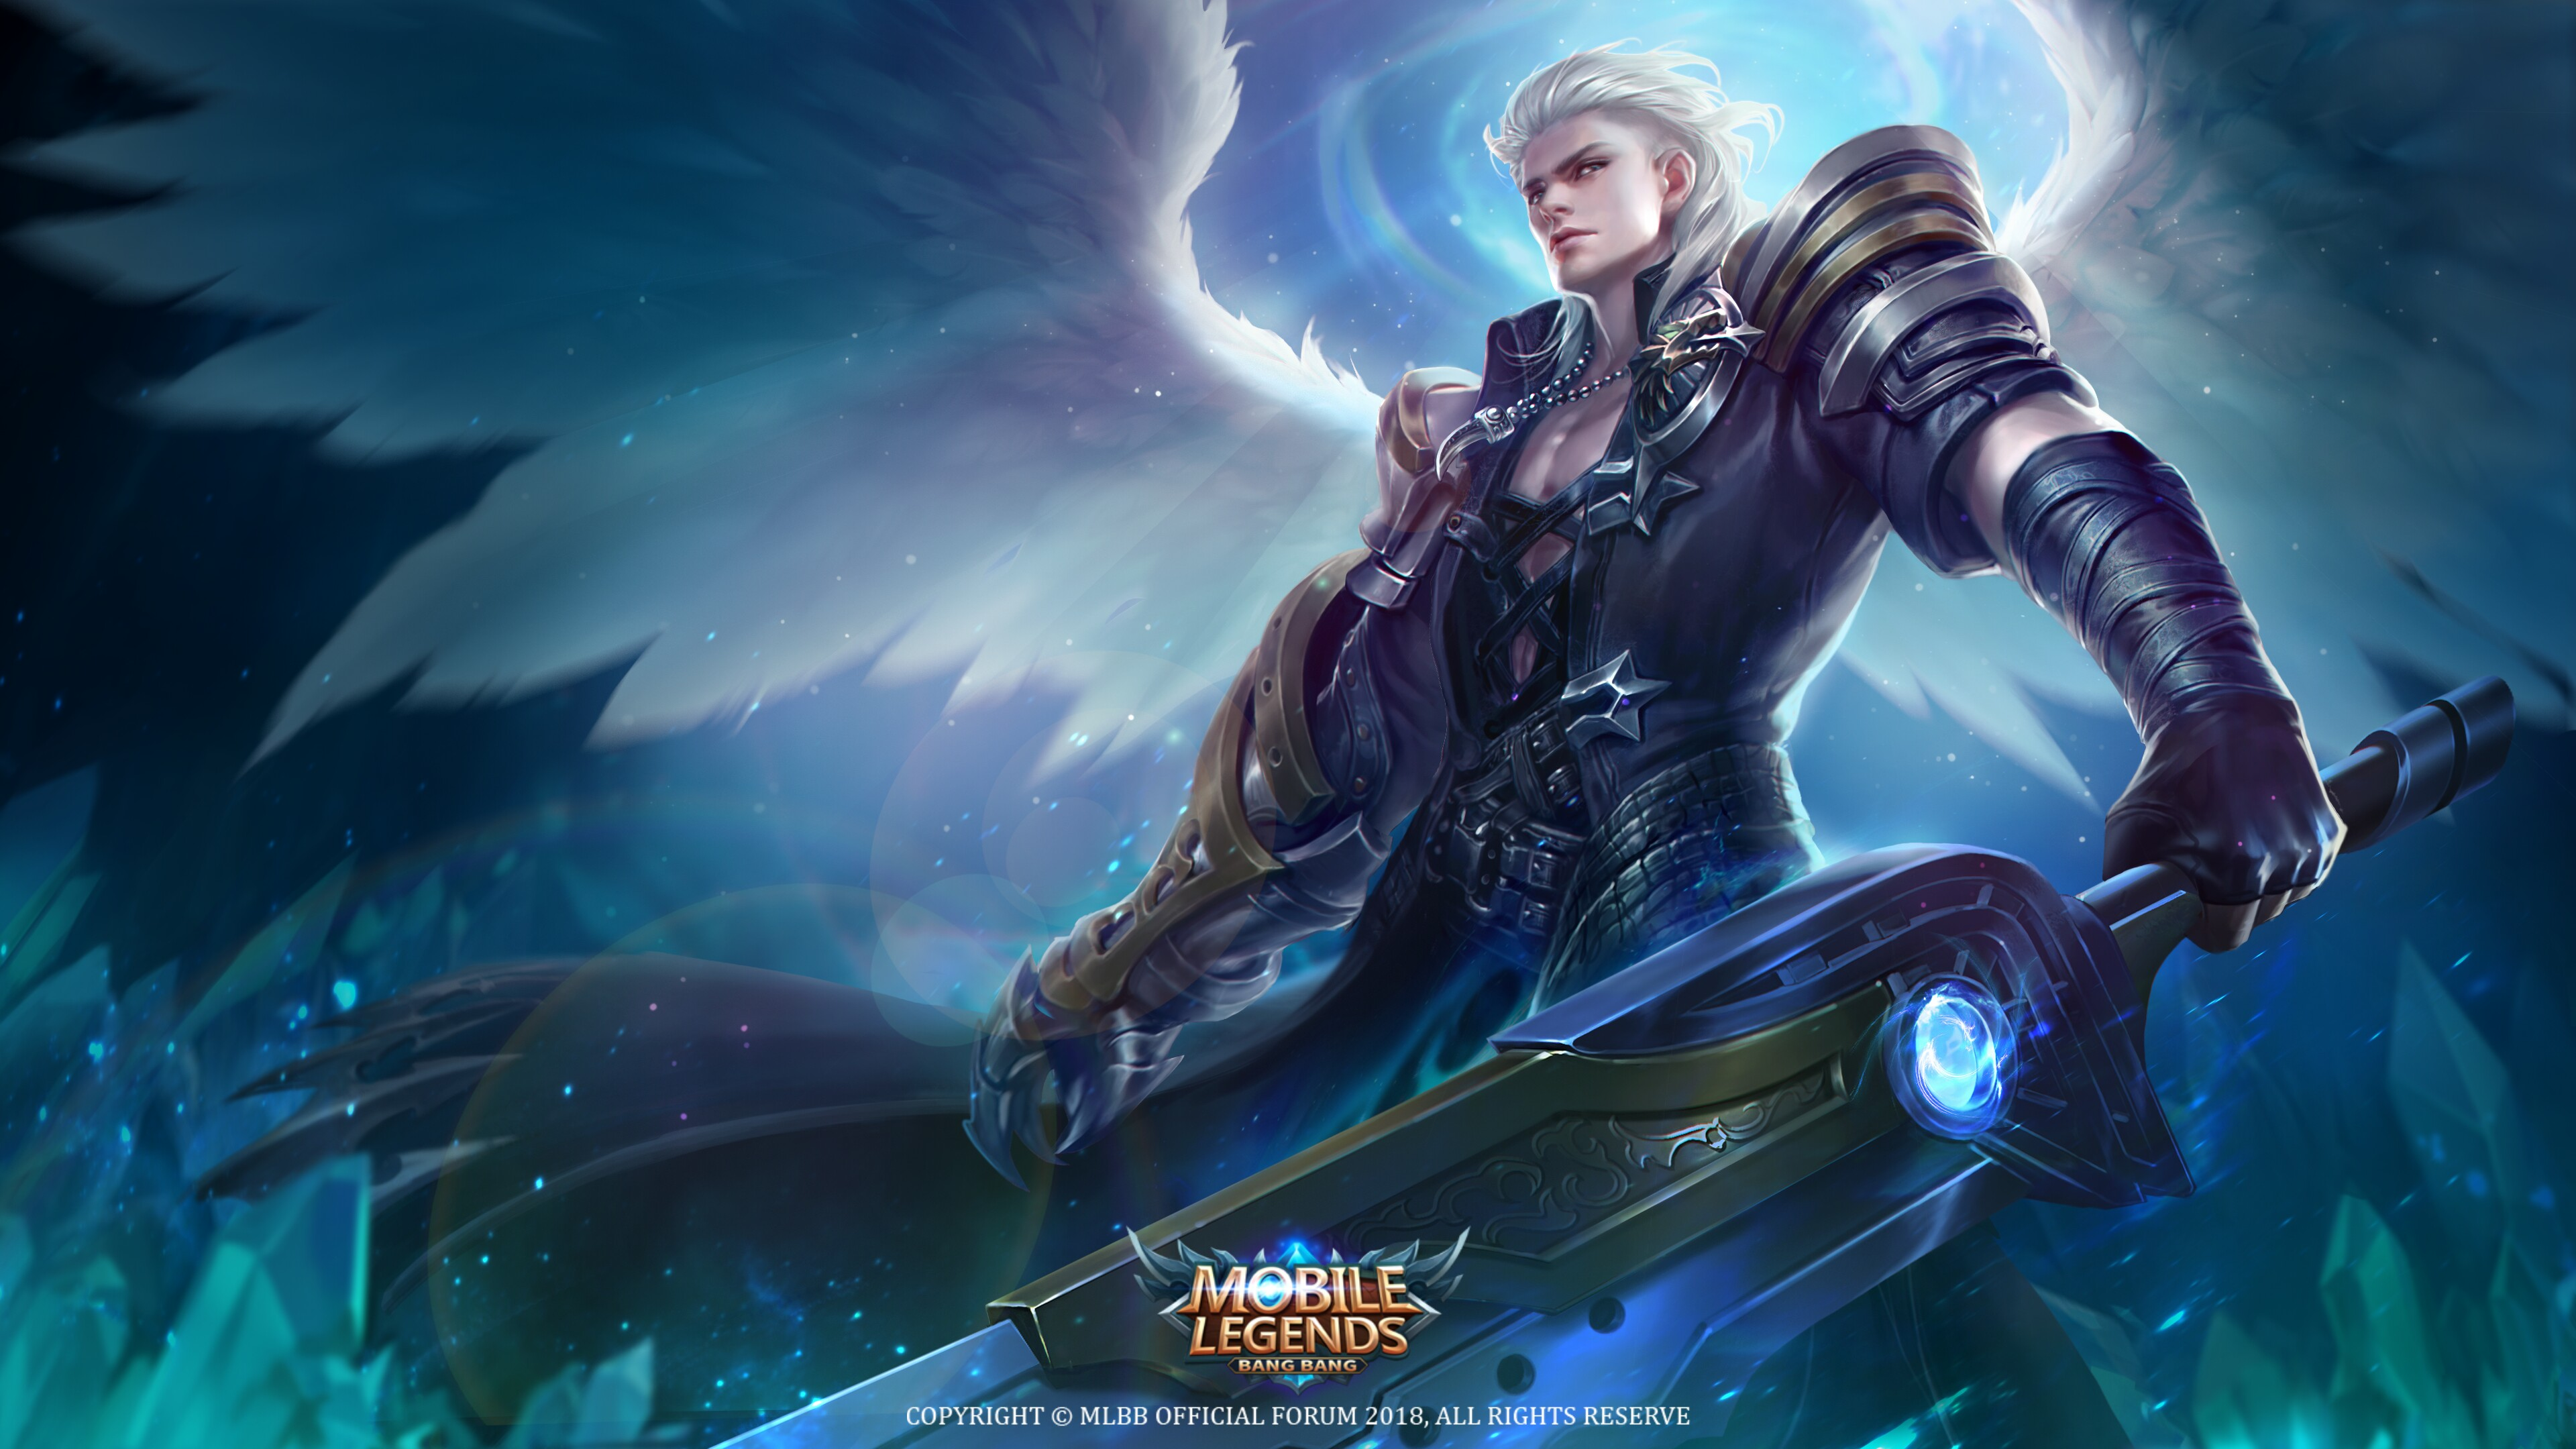 120 Best Mobile Legends Wallpapers Ever Download for Mobile 3840x2160